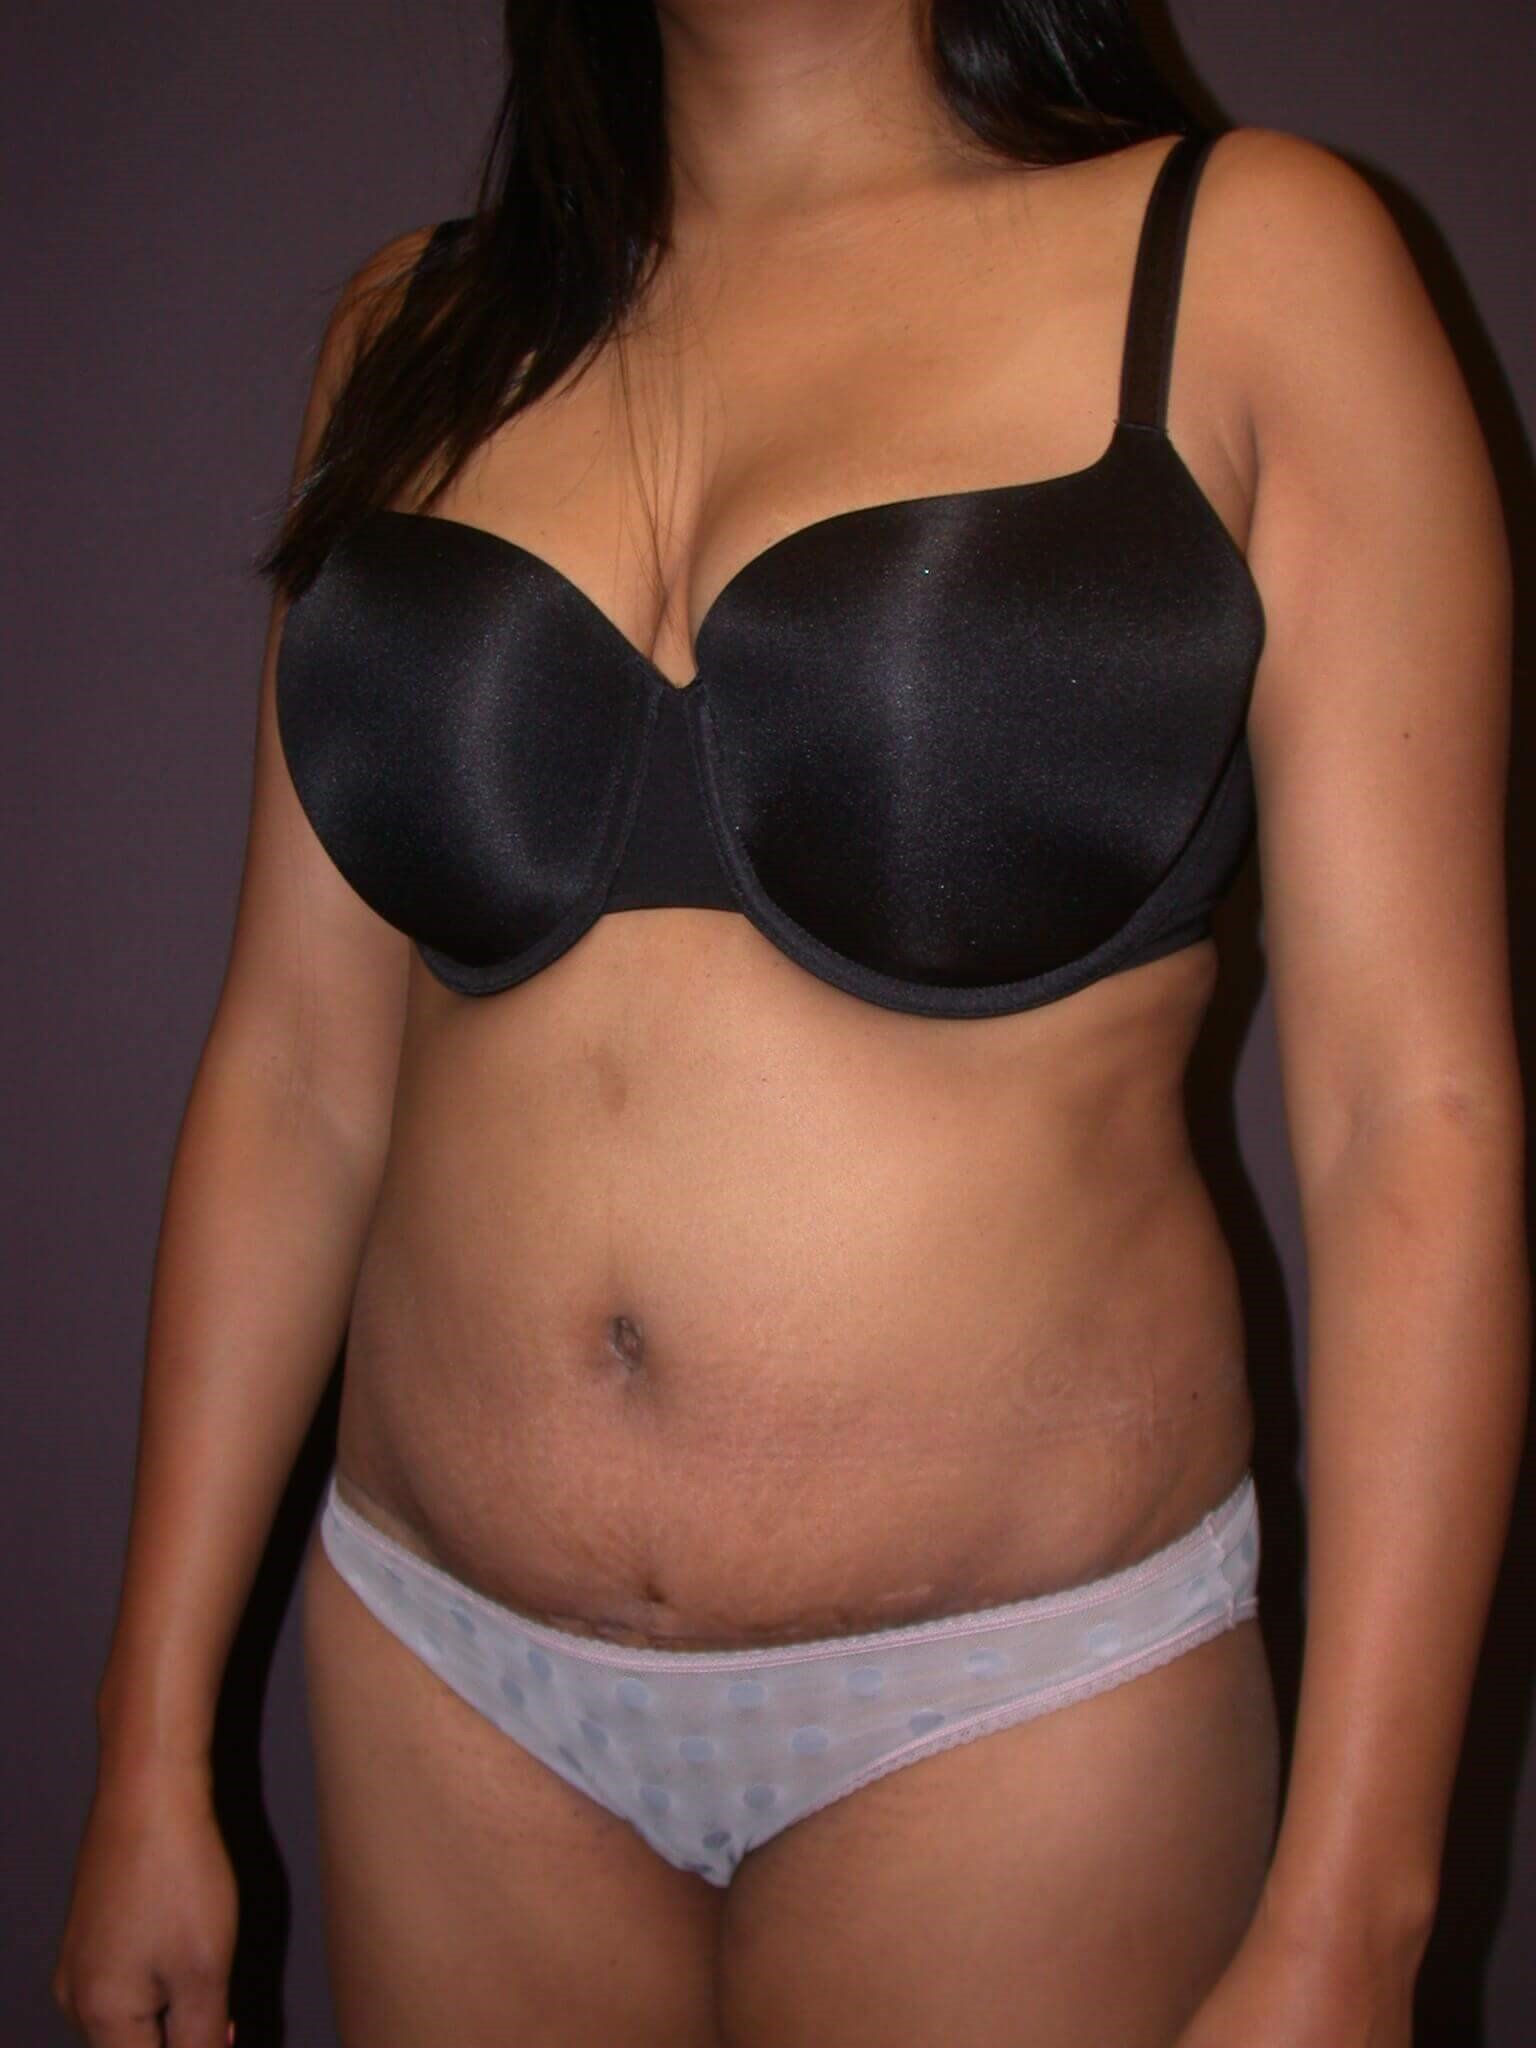 Abdominoplasty Side View After